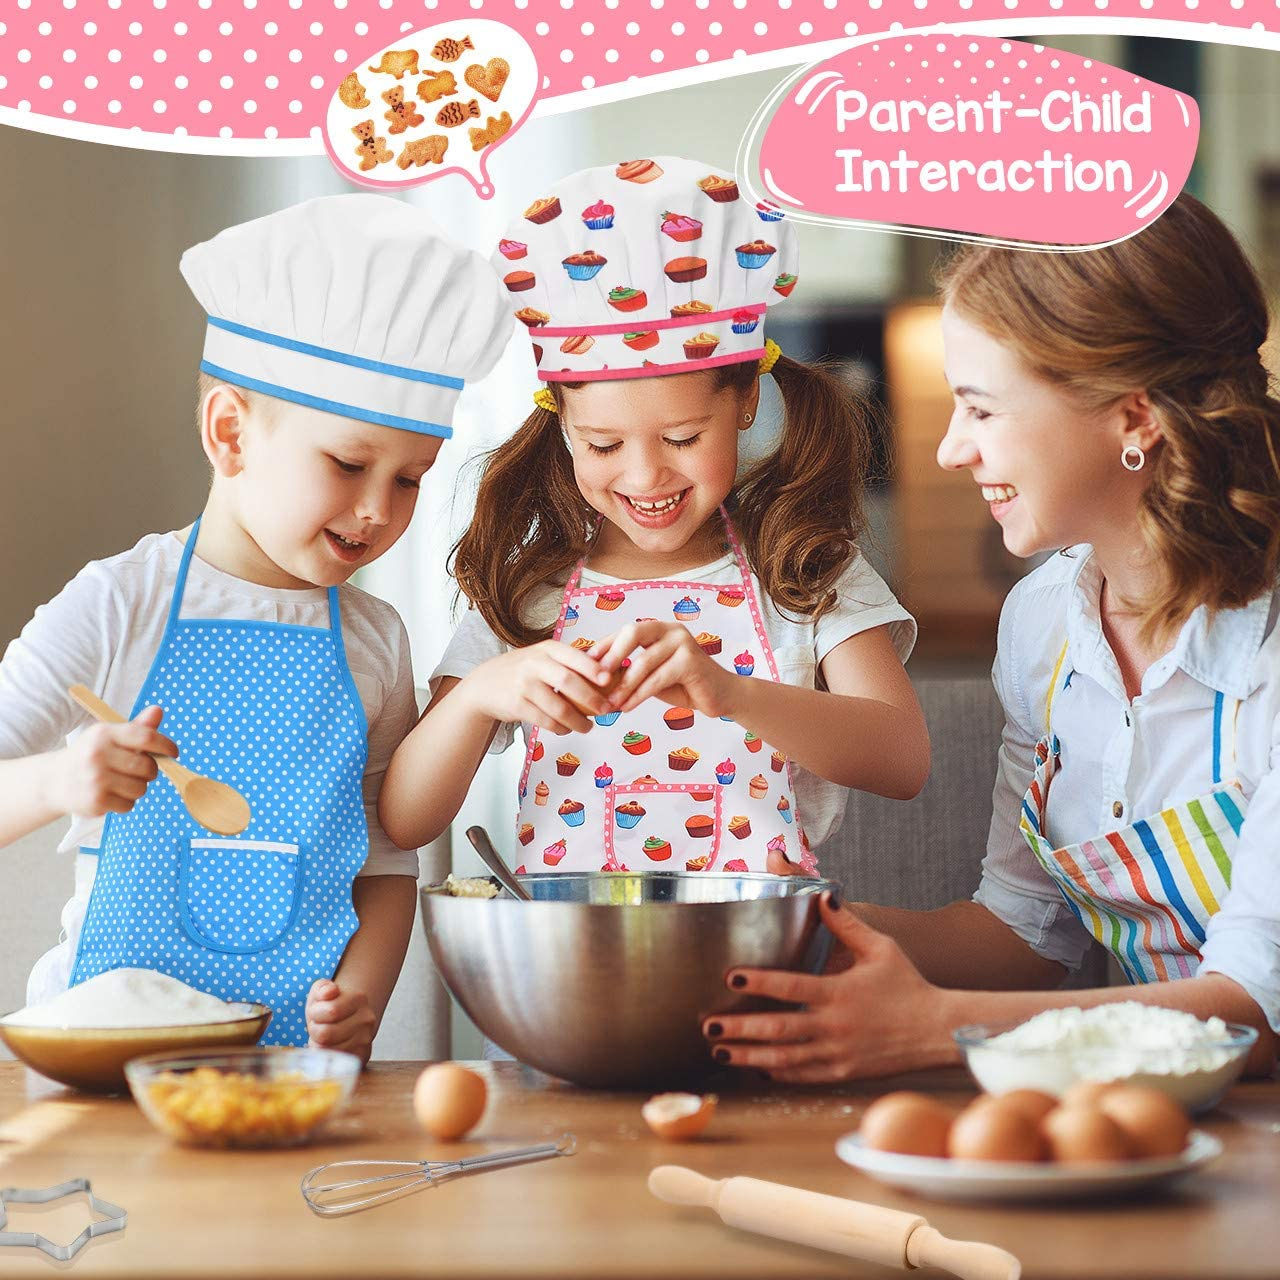 Blue Oven Mittand Baking Tools for Kids Cooking Girls Age 9-12 ATOPDREAM Kids Apron 11 Pcs Kids Cooking Supplies Includes Baking Set Chef Hat and Apron for Girls